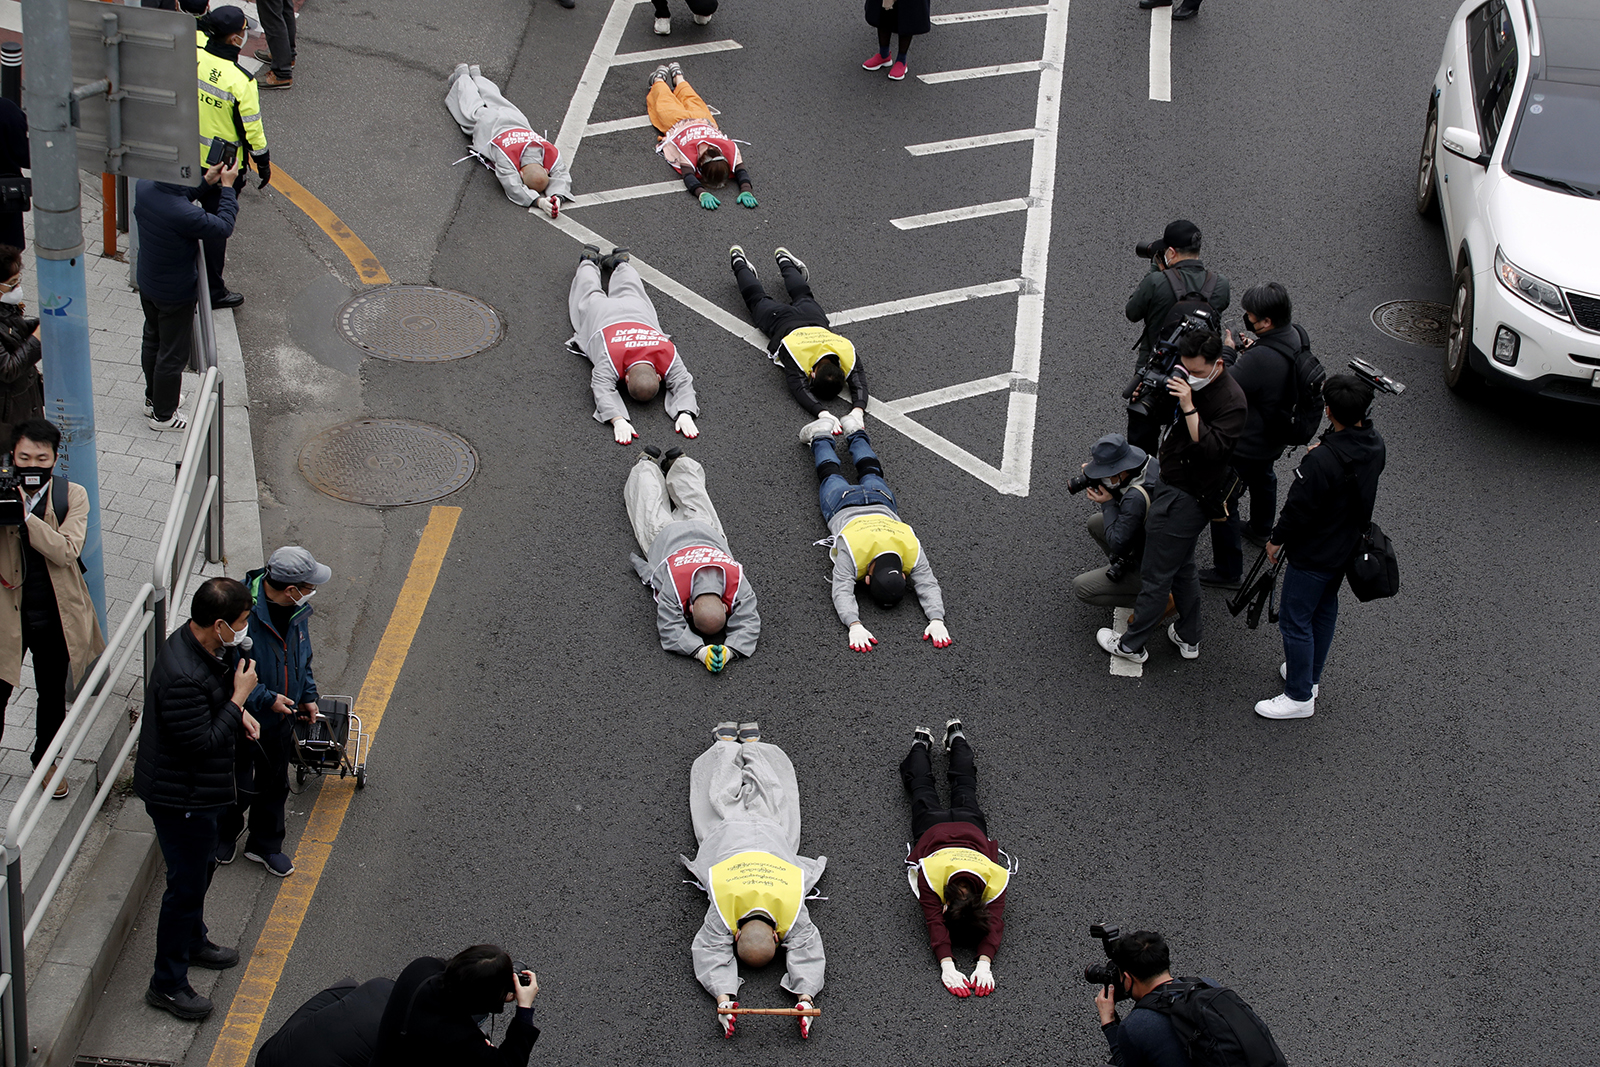 South Korean Buddhist monks and Myanmar people living in South Korea prostrate on the road during a protest calling for the recovery of Myanmar's democracy and against the military coup near the Myanmar embassy in Seoul, South Korea, Friday, March 12, 2021. (AP Photo/Lee Jin-man)